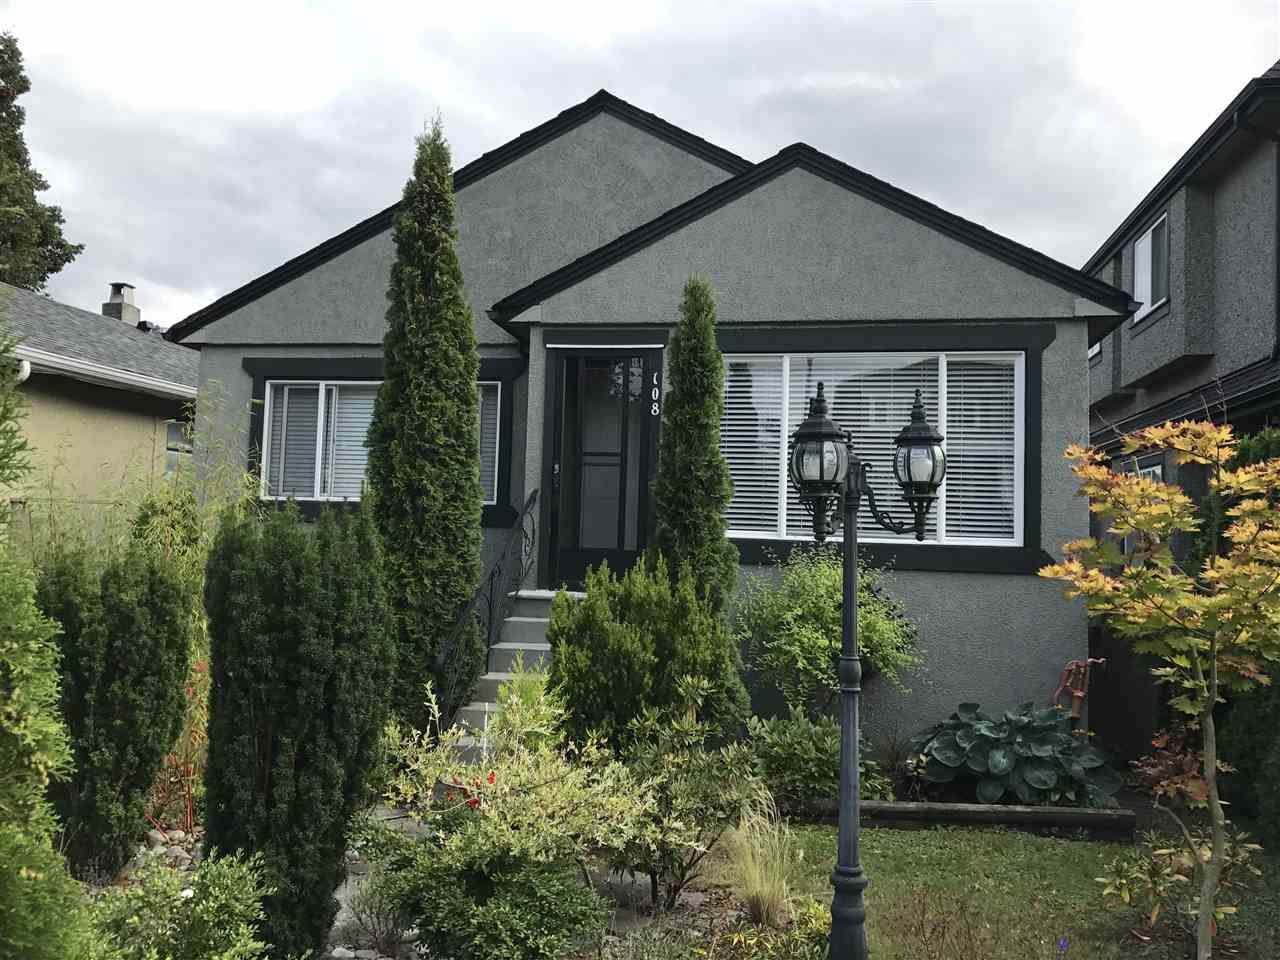 Main Photo: 108 W 45TH Avenue in Vancouver: Oakridge VW House for sale (Vancouver West)  : MLS®# R2395956